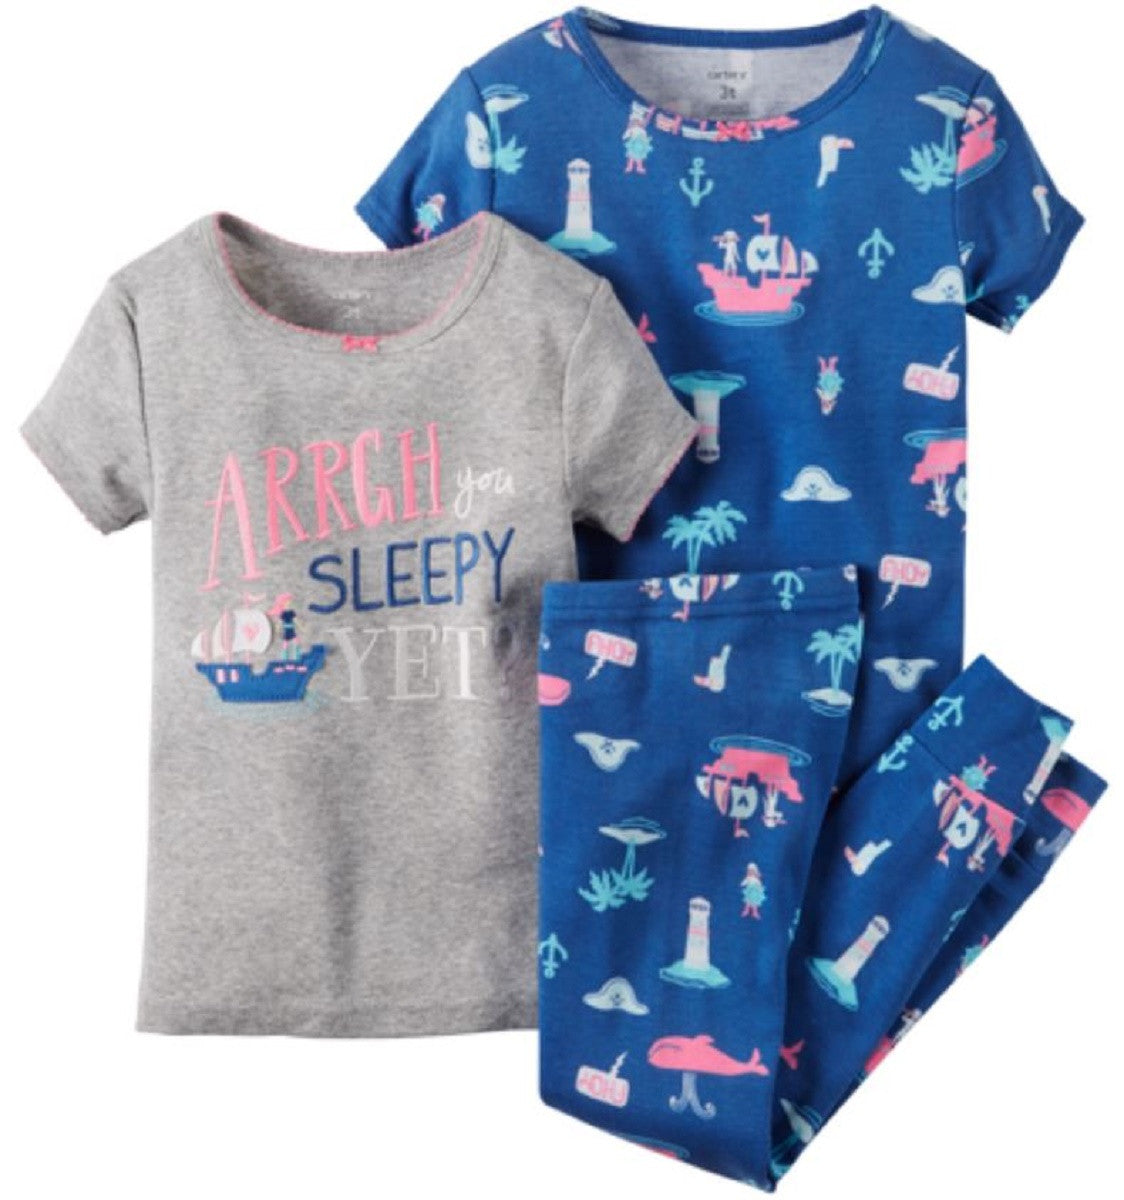 6, 07 Carters Little Girls 3 Piece Cotton Pajama Sleepwear Set Arrgh You Sleepy